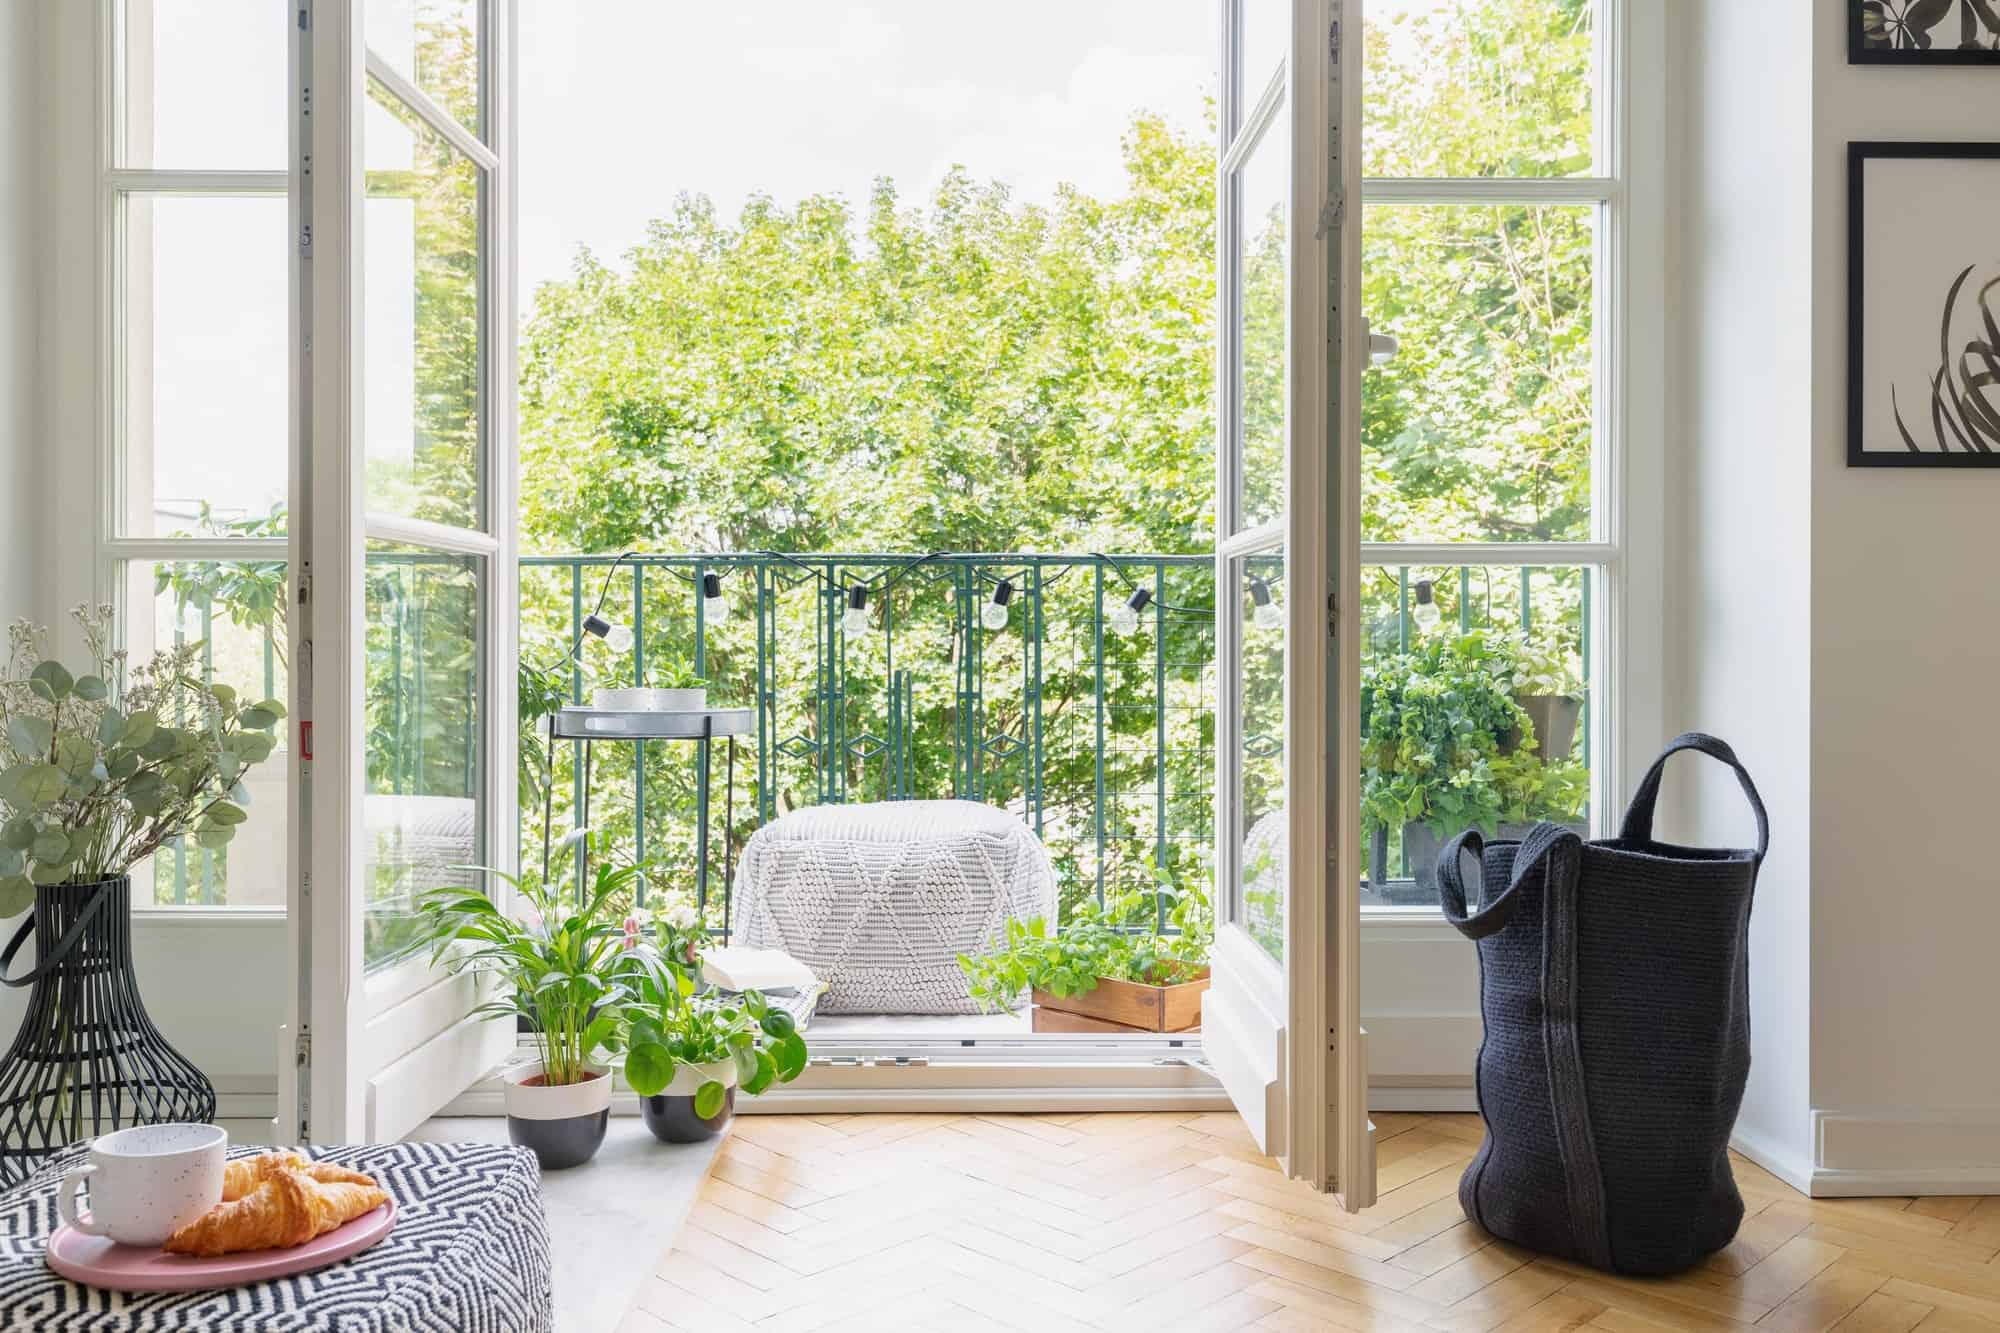 Green plants in pots in open door to balcony with small stylish